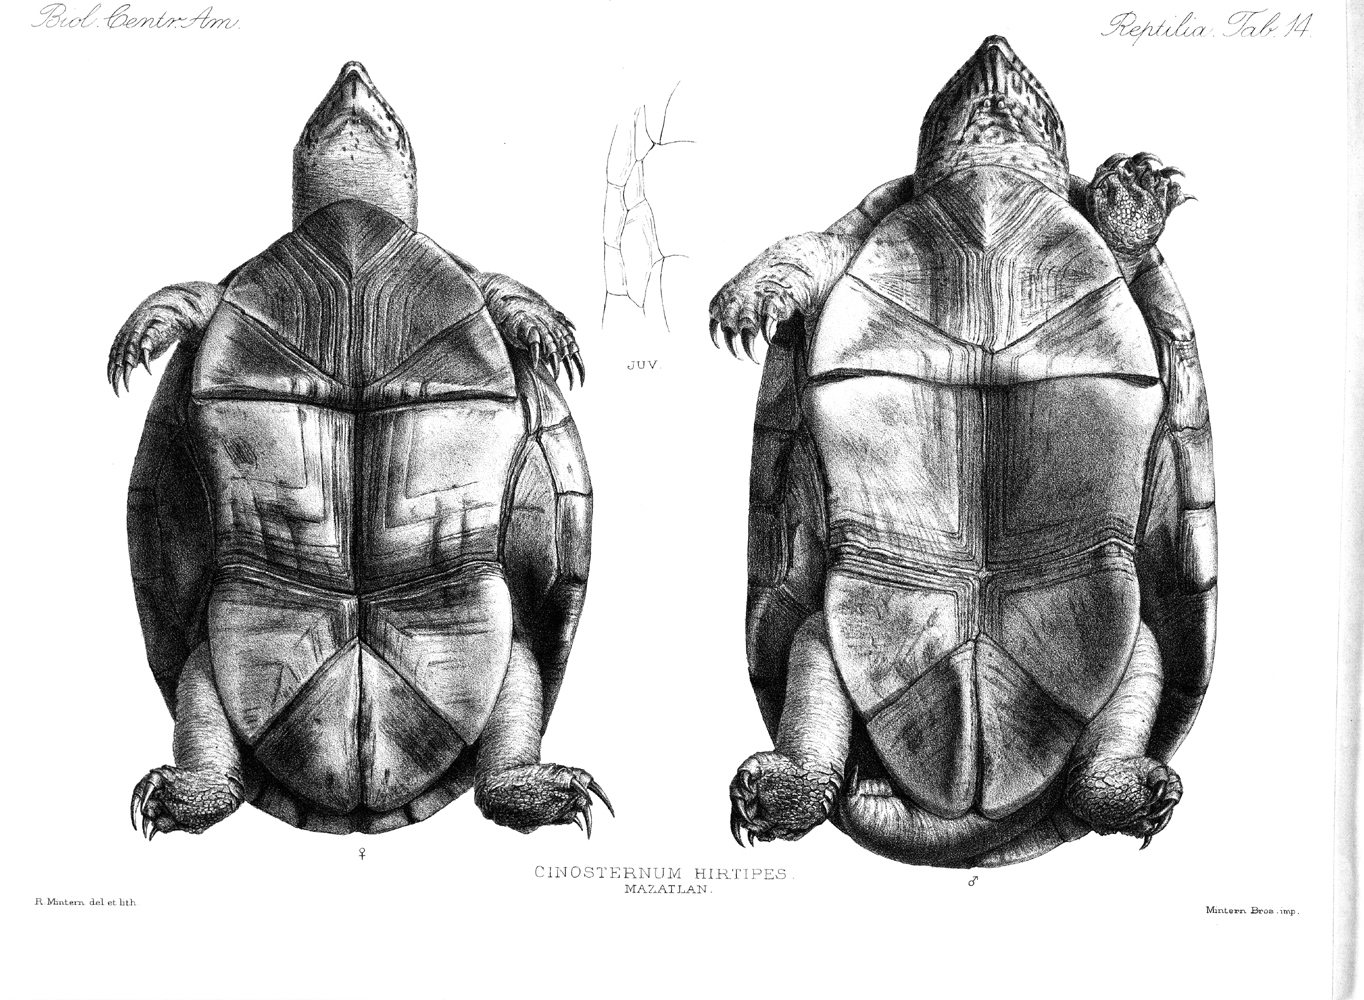 Turtles,  Image number:bca_04_00_00_364